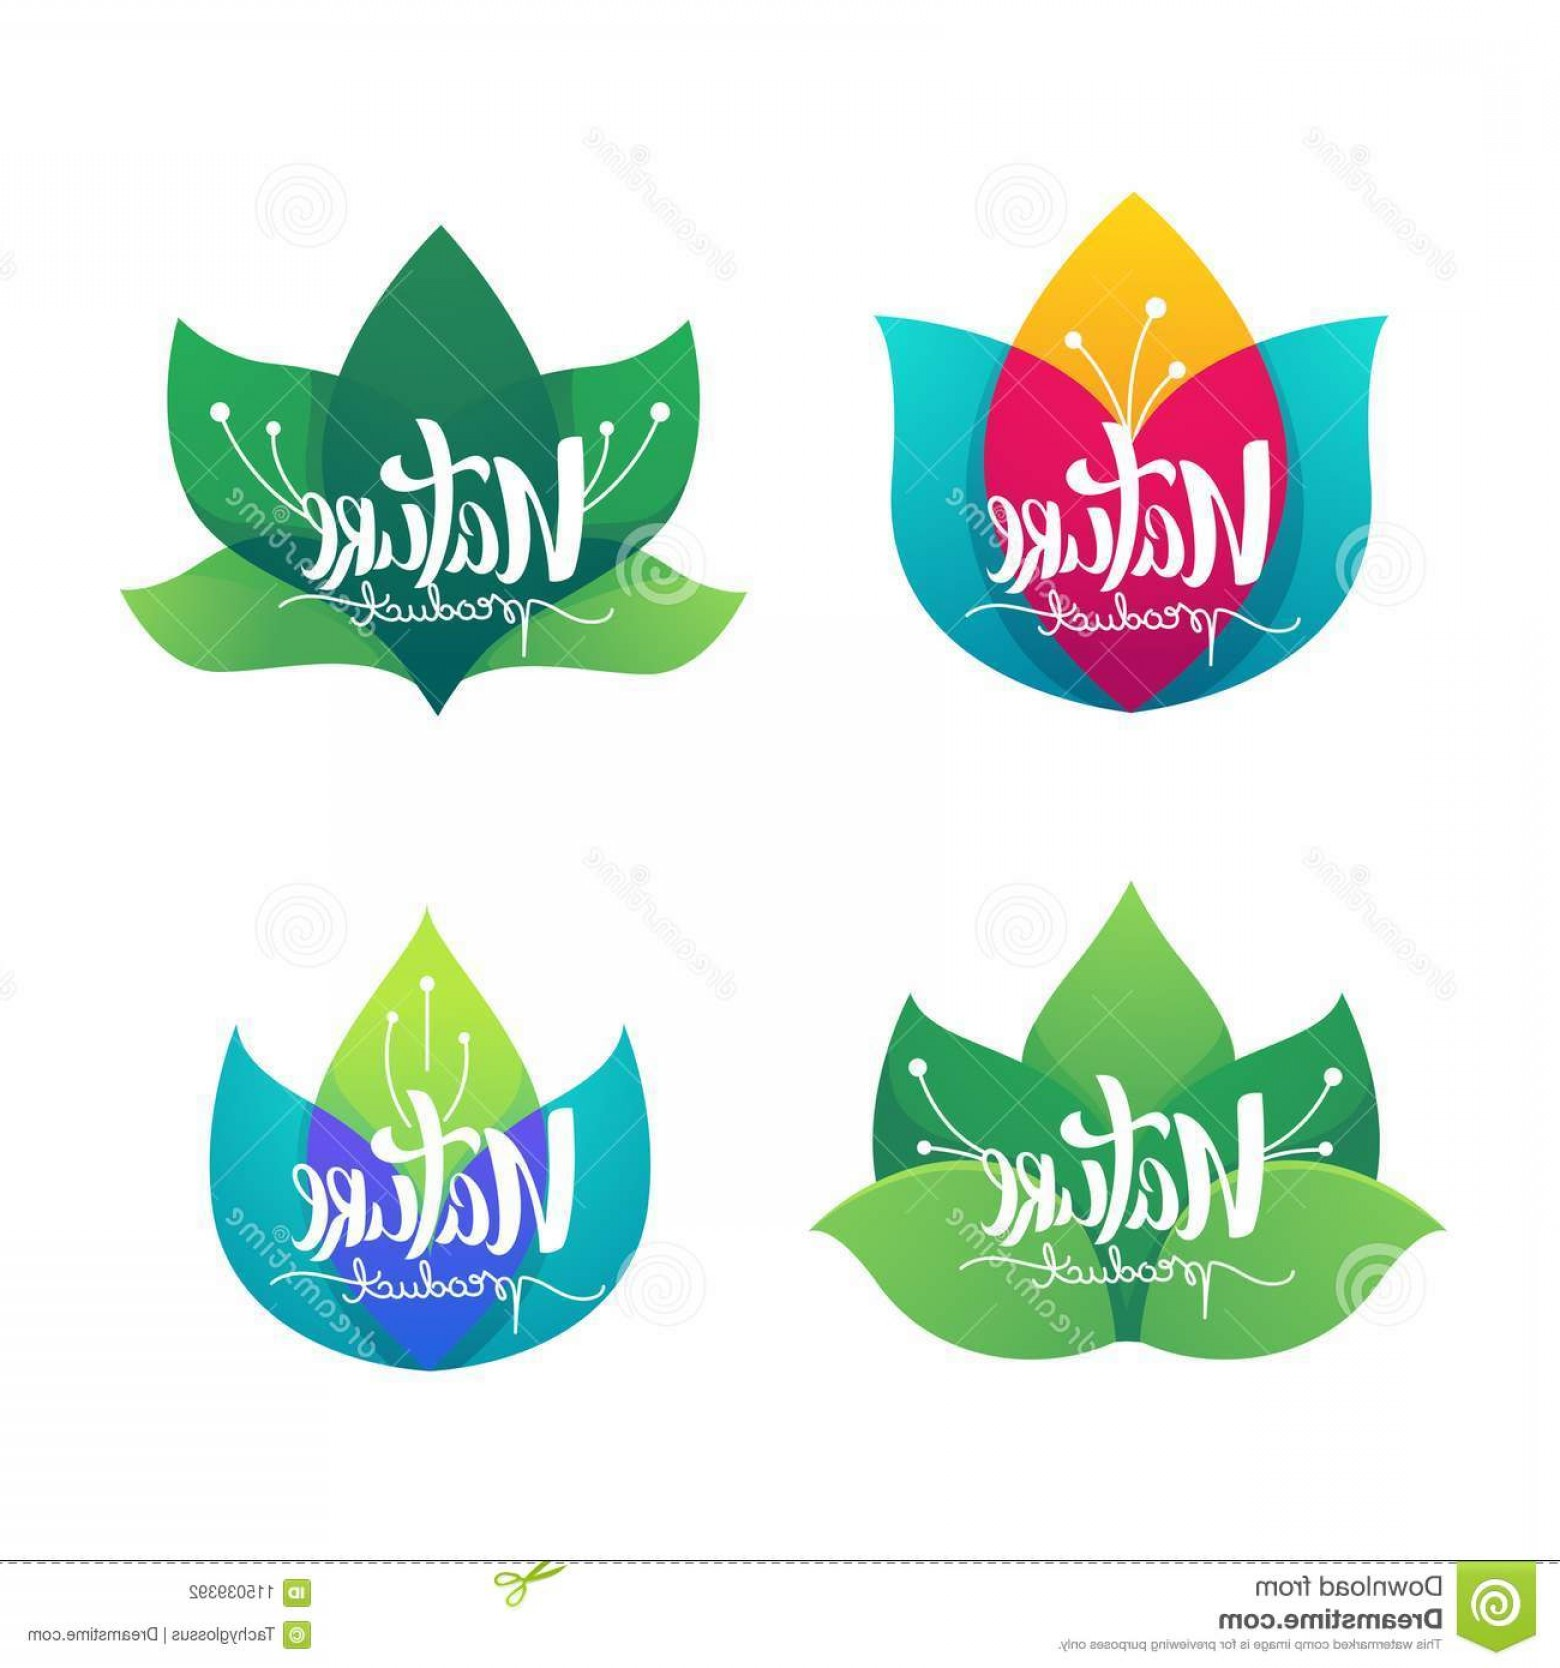 Florid Vector Simple: Nature Product Vector Collection Simple Flowers Emblems Nature Product Vector Collection Simple Flowers Emblems Logo Image